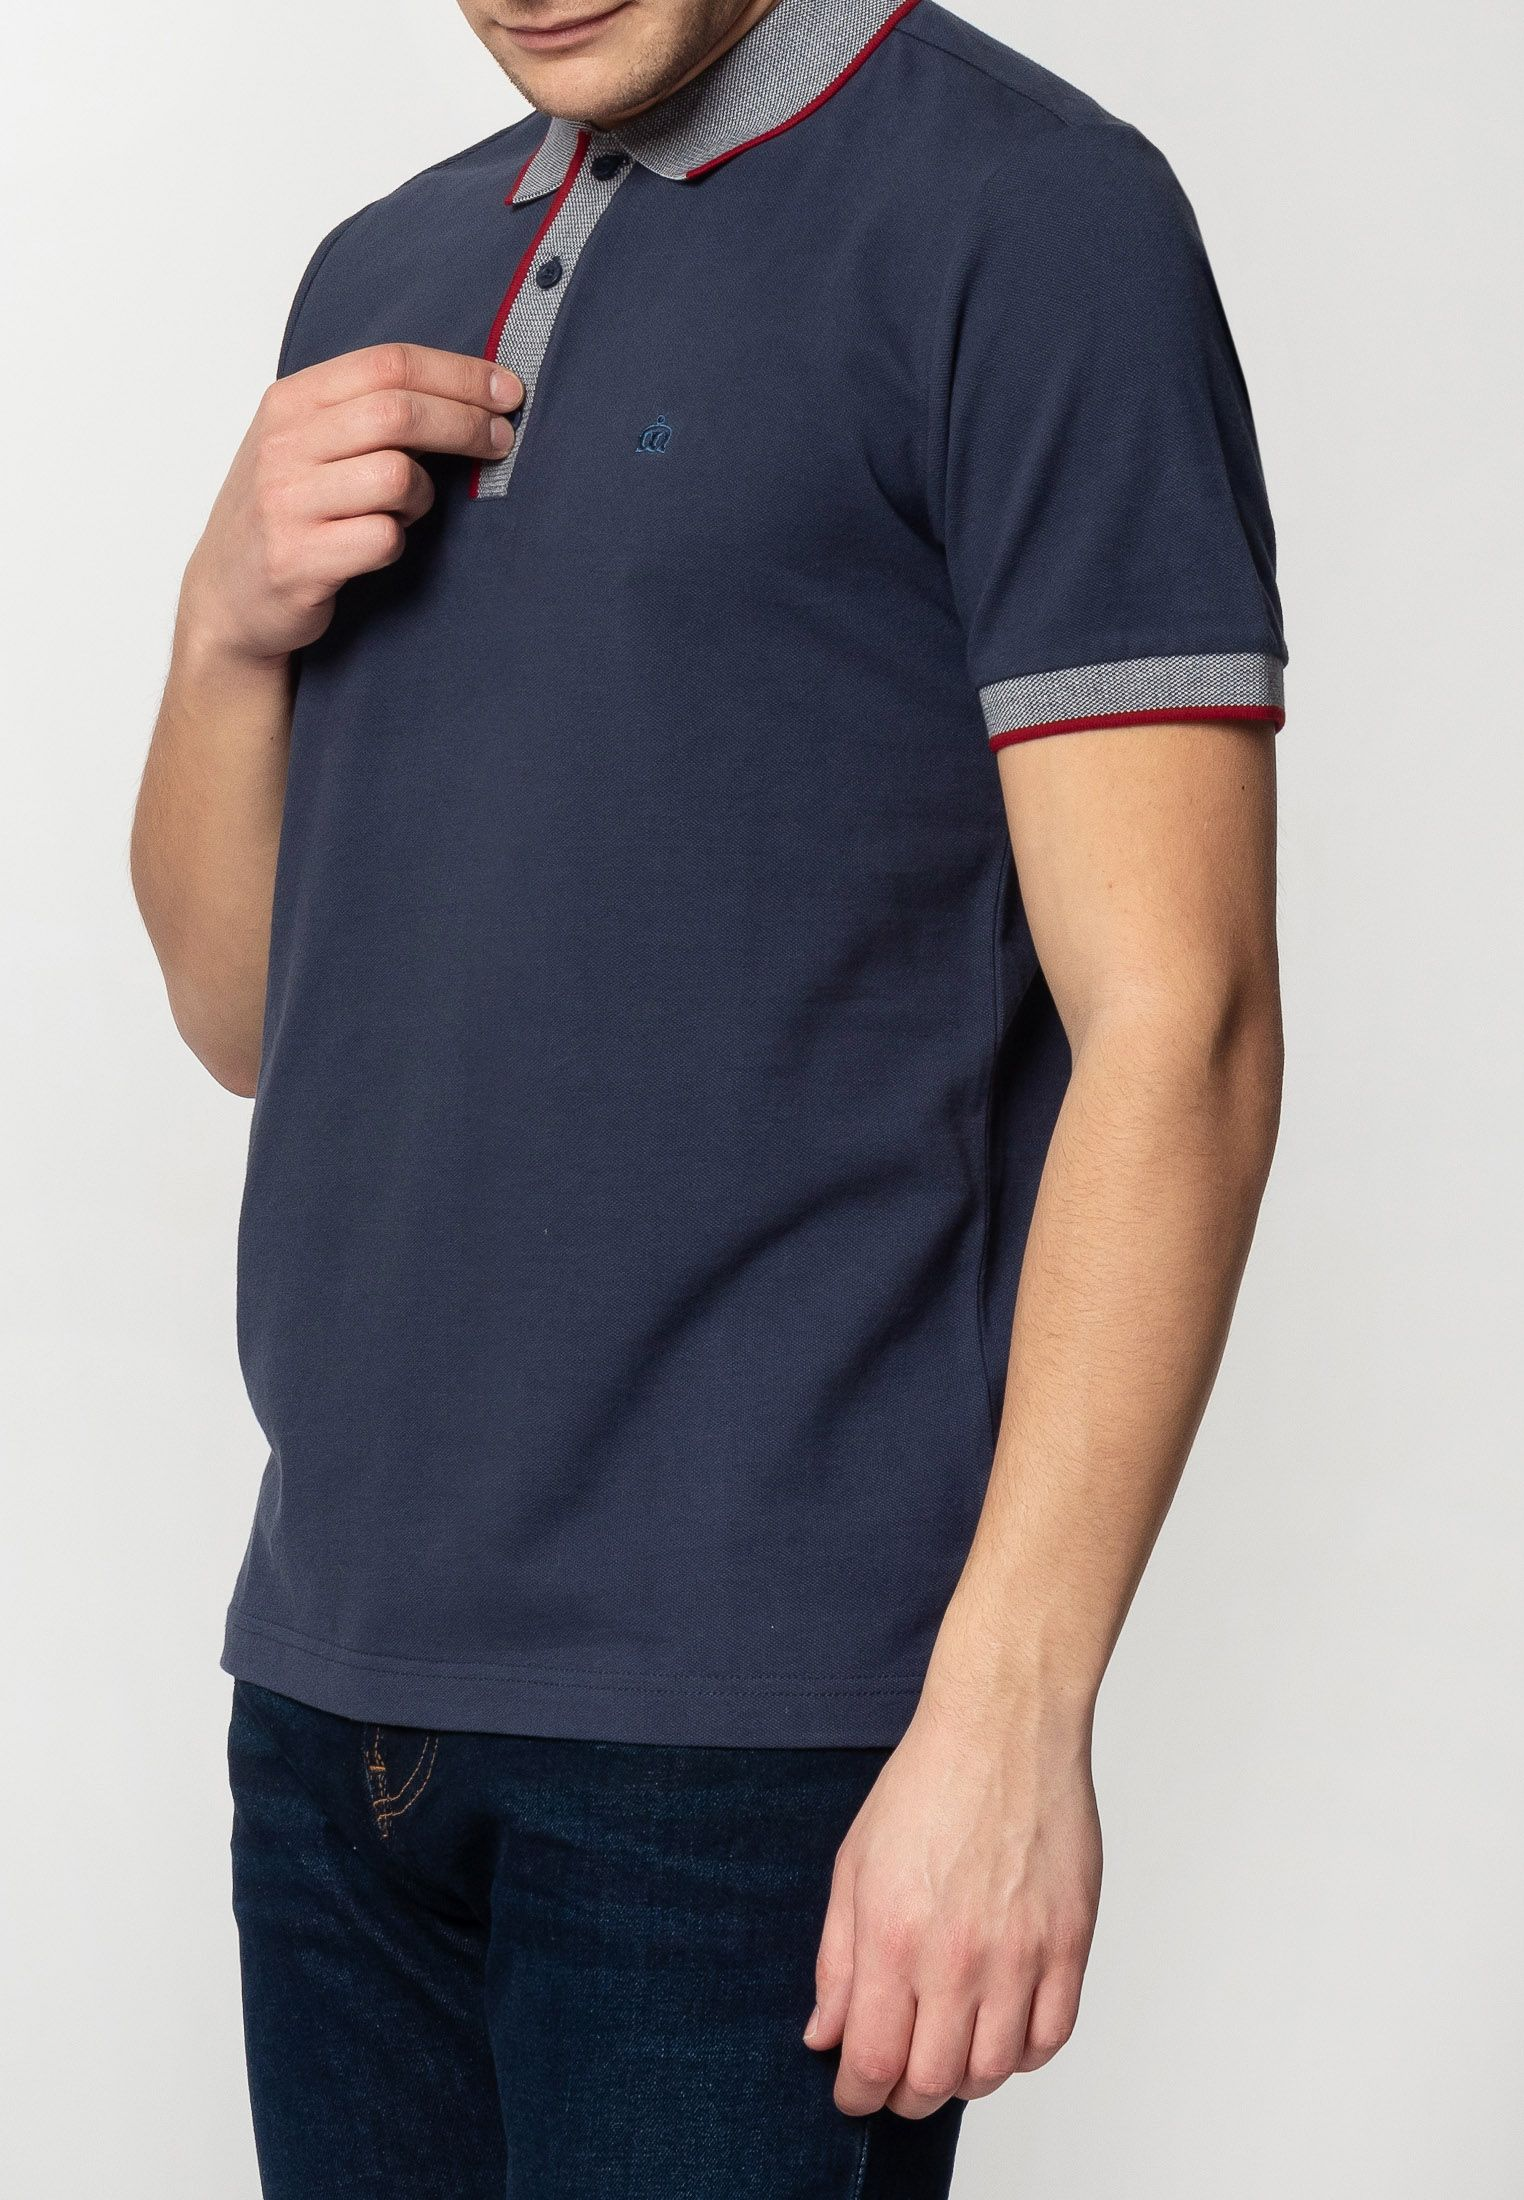 Rupert Mens Plain Cotton Polo Shirt With Collar And Sleeve Contrast Details In Dark Blue